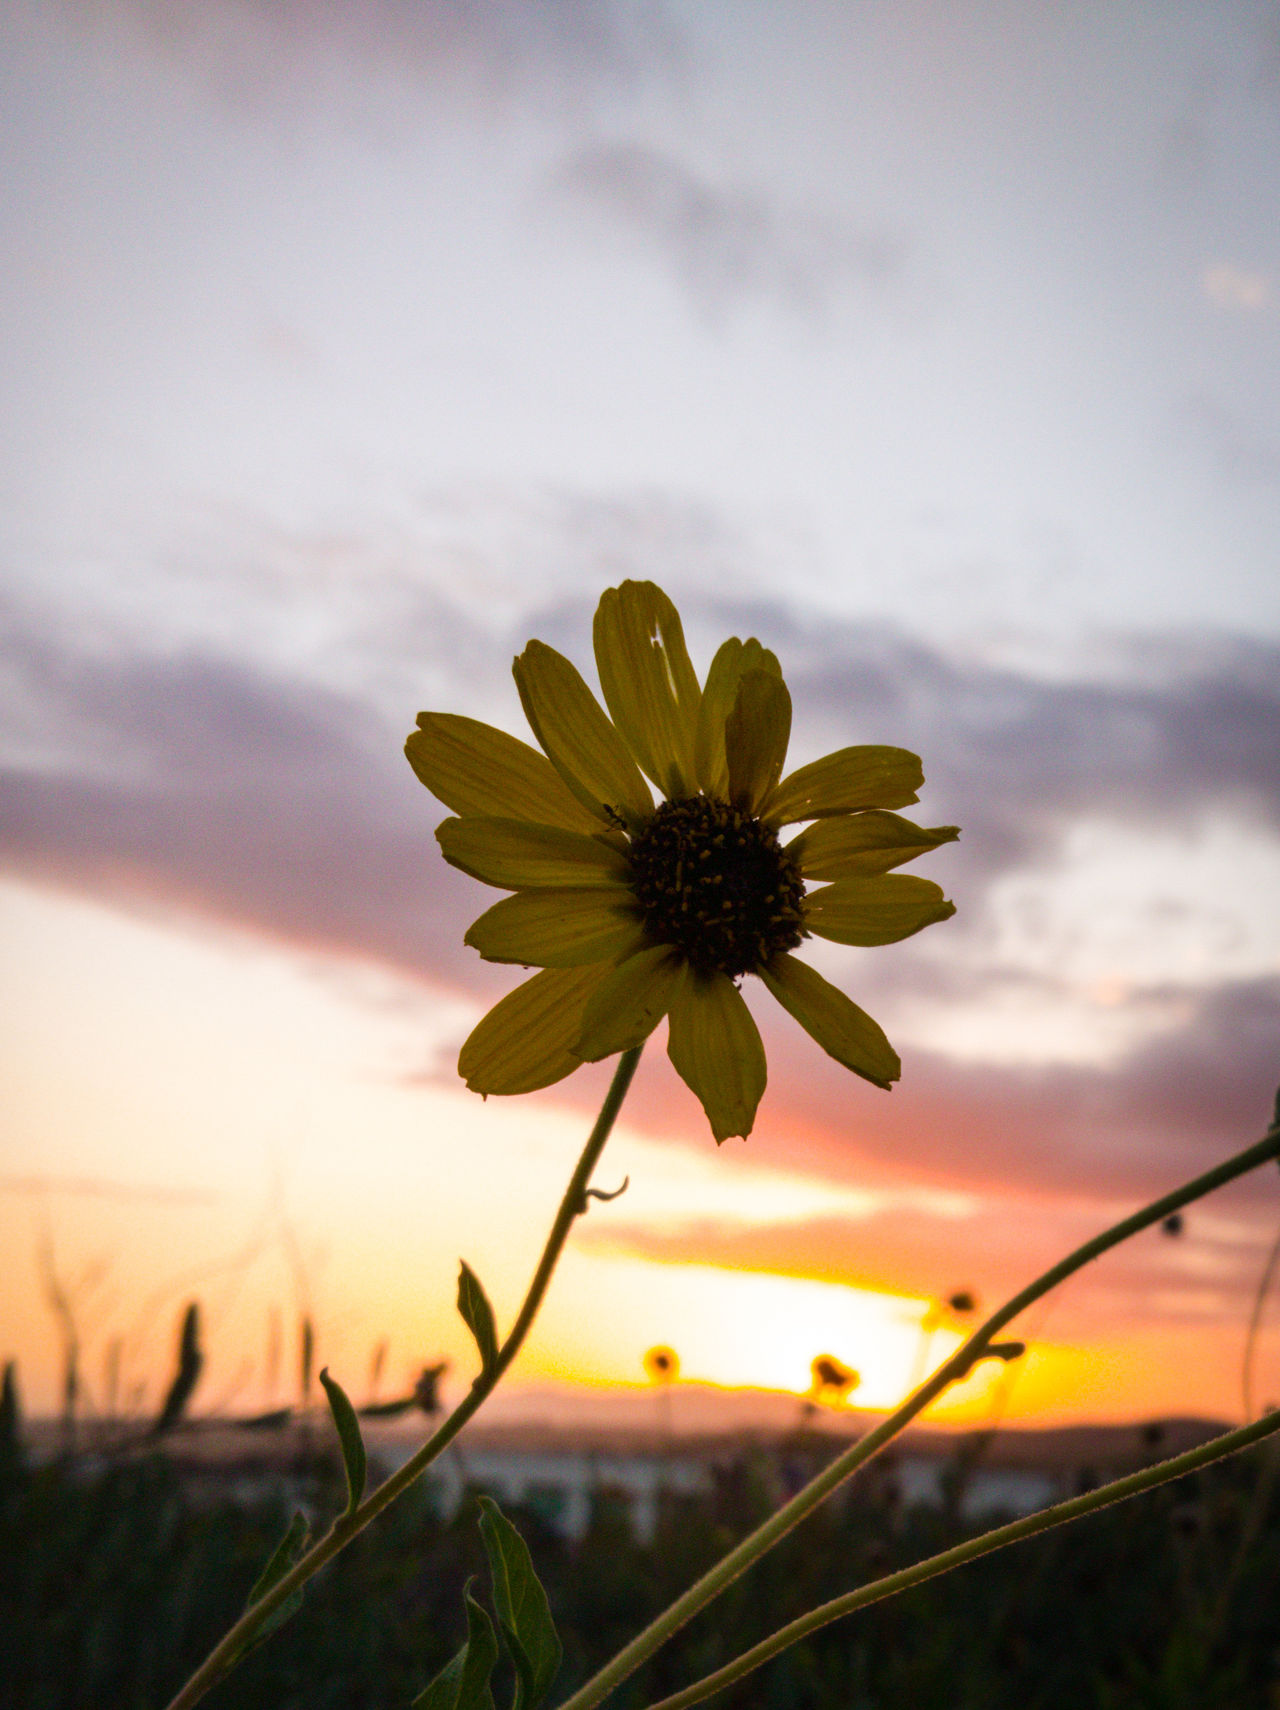 Flower Cloud - Sky Sky Plant Sunset Nature Outdoors Landscape Beauty In Nature Rural Scene No People Petal Flower Head Field Fragility Tranquility Day Growth Sunlight Scenics